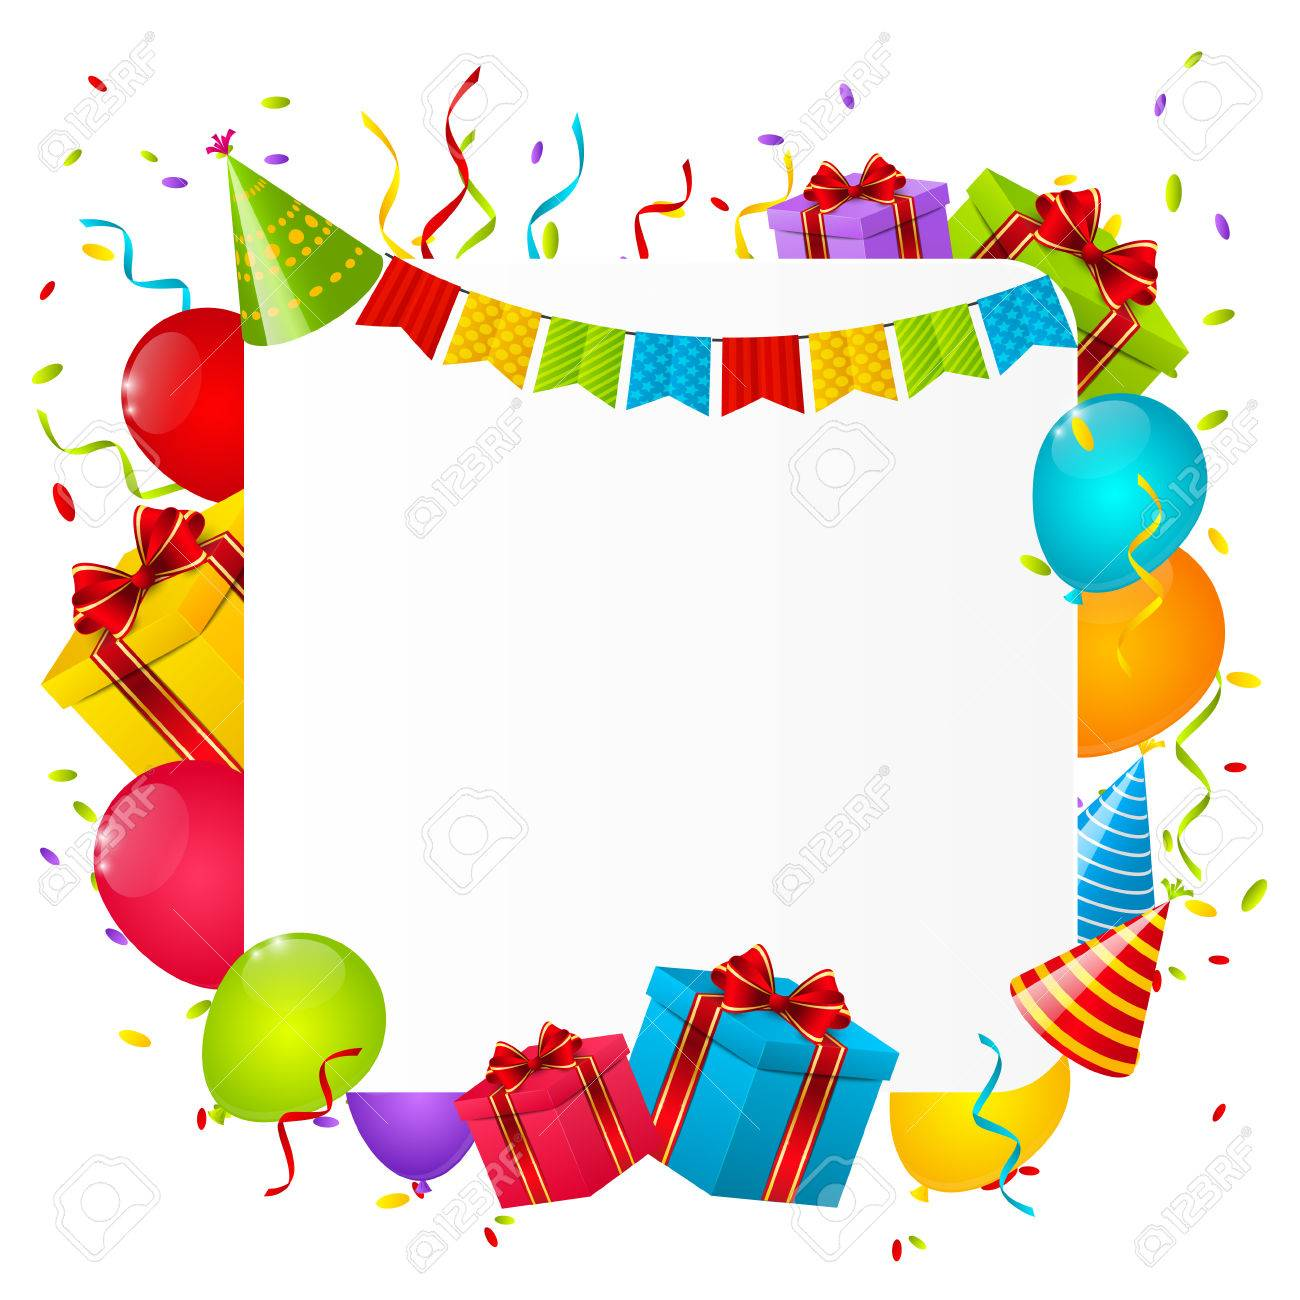 Buy Birthday December background pictures pictures trends